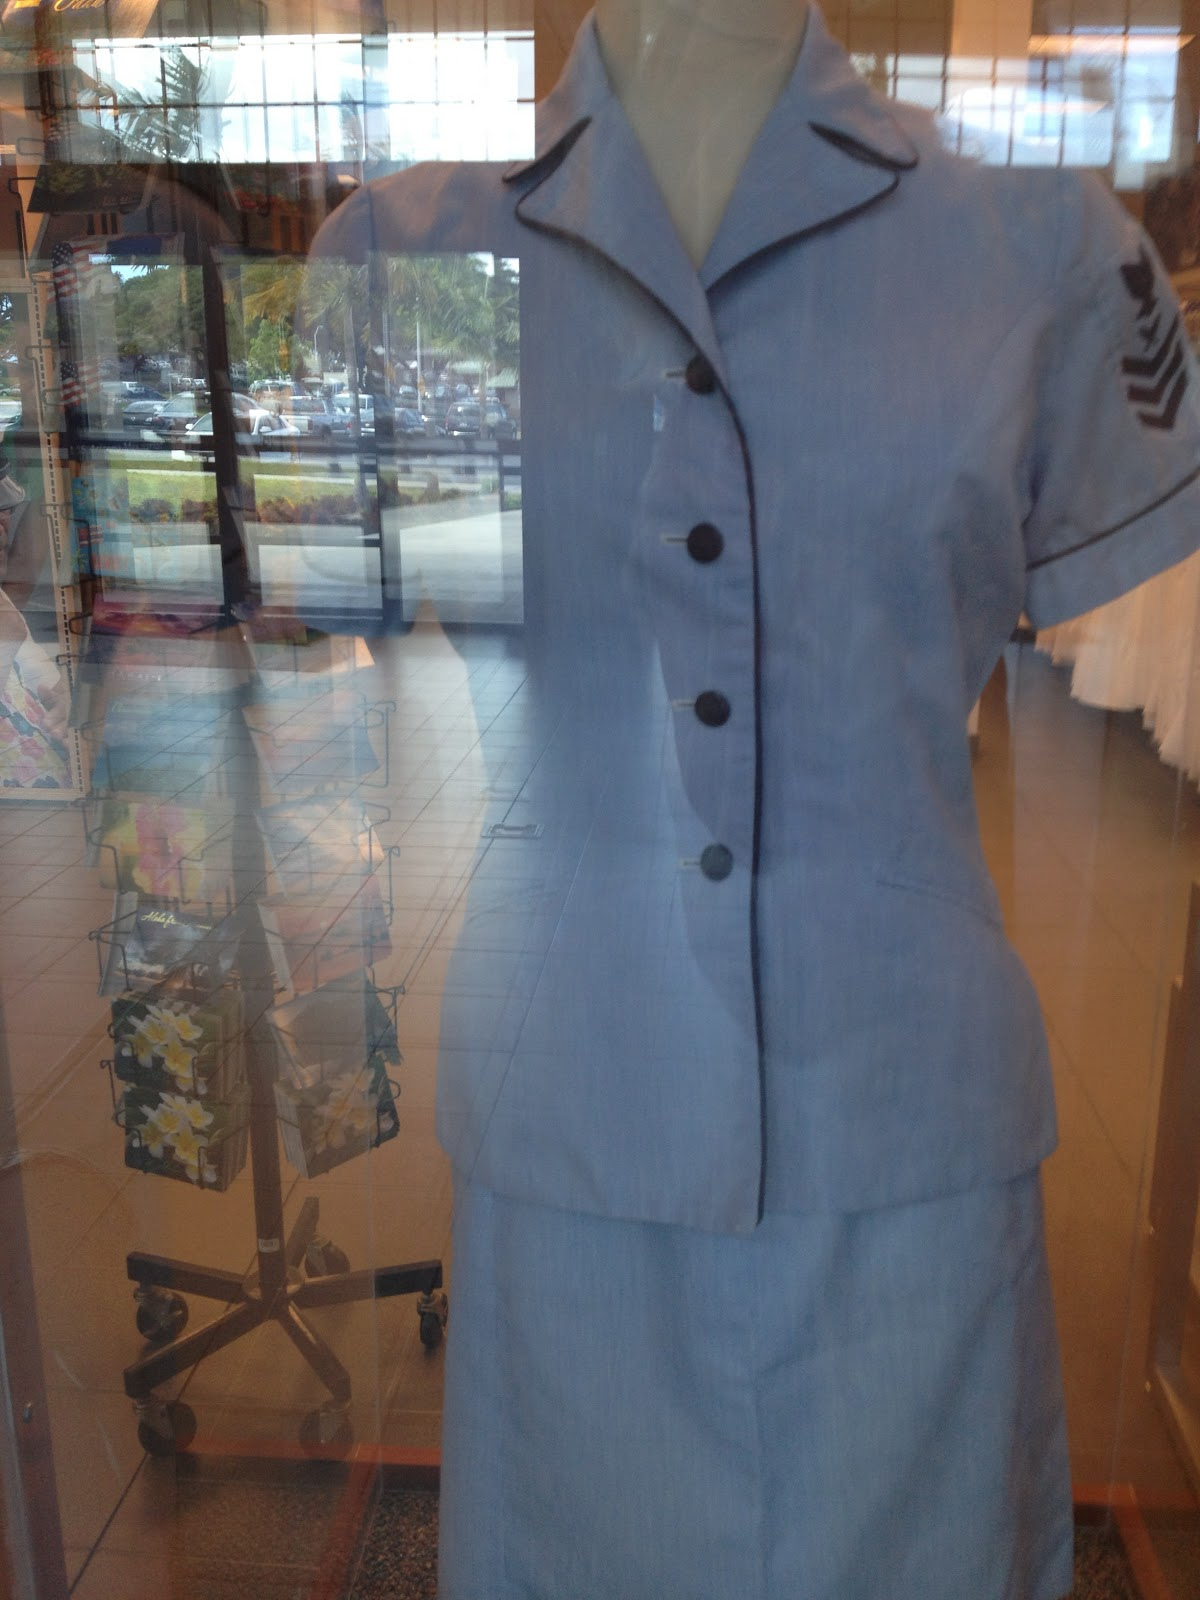 Navy Uniforms For Women 2013 To the uniforms women wore